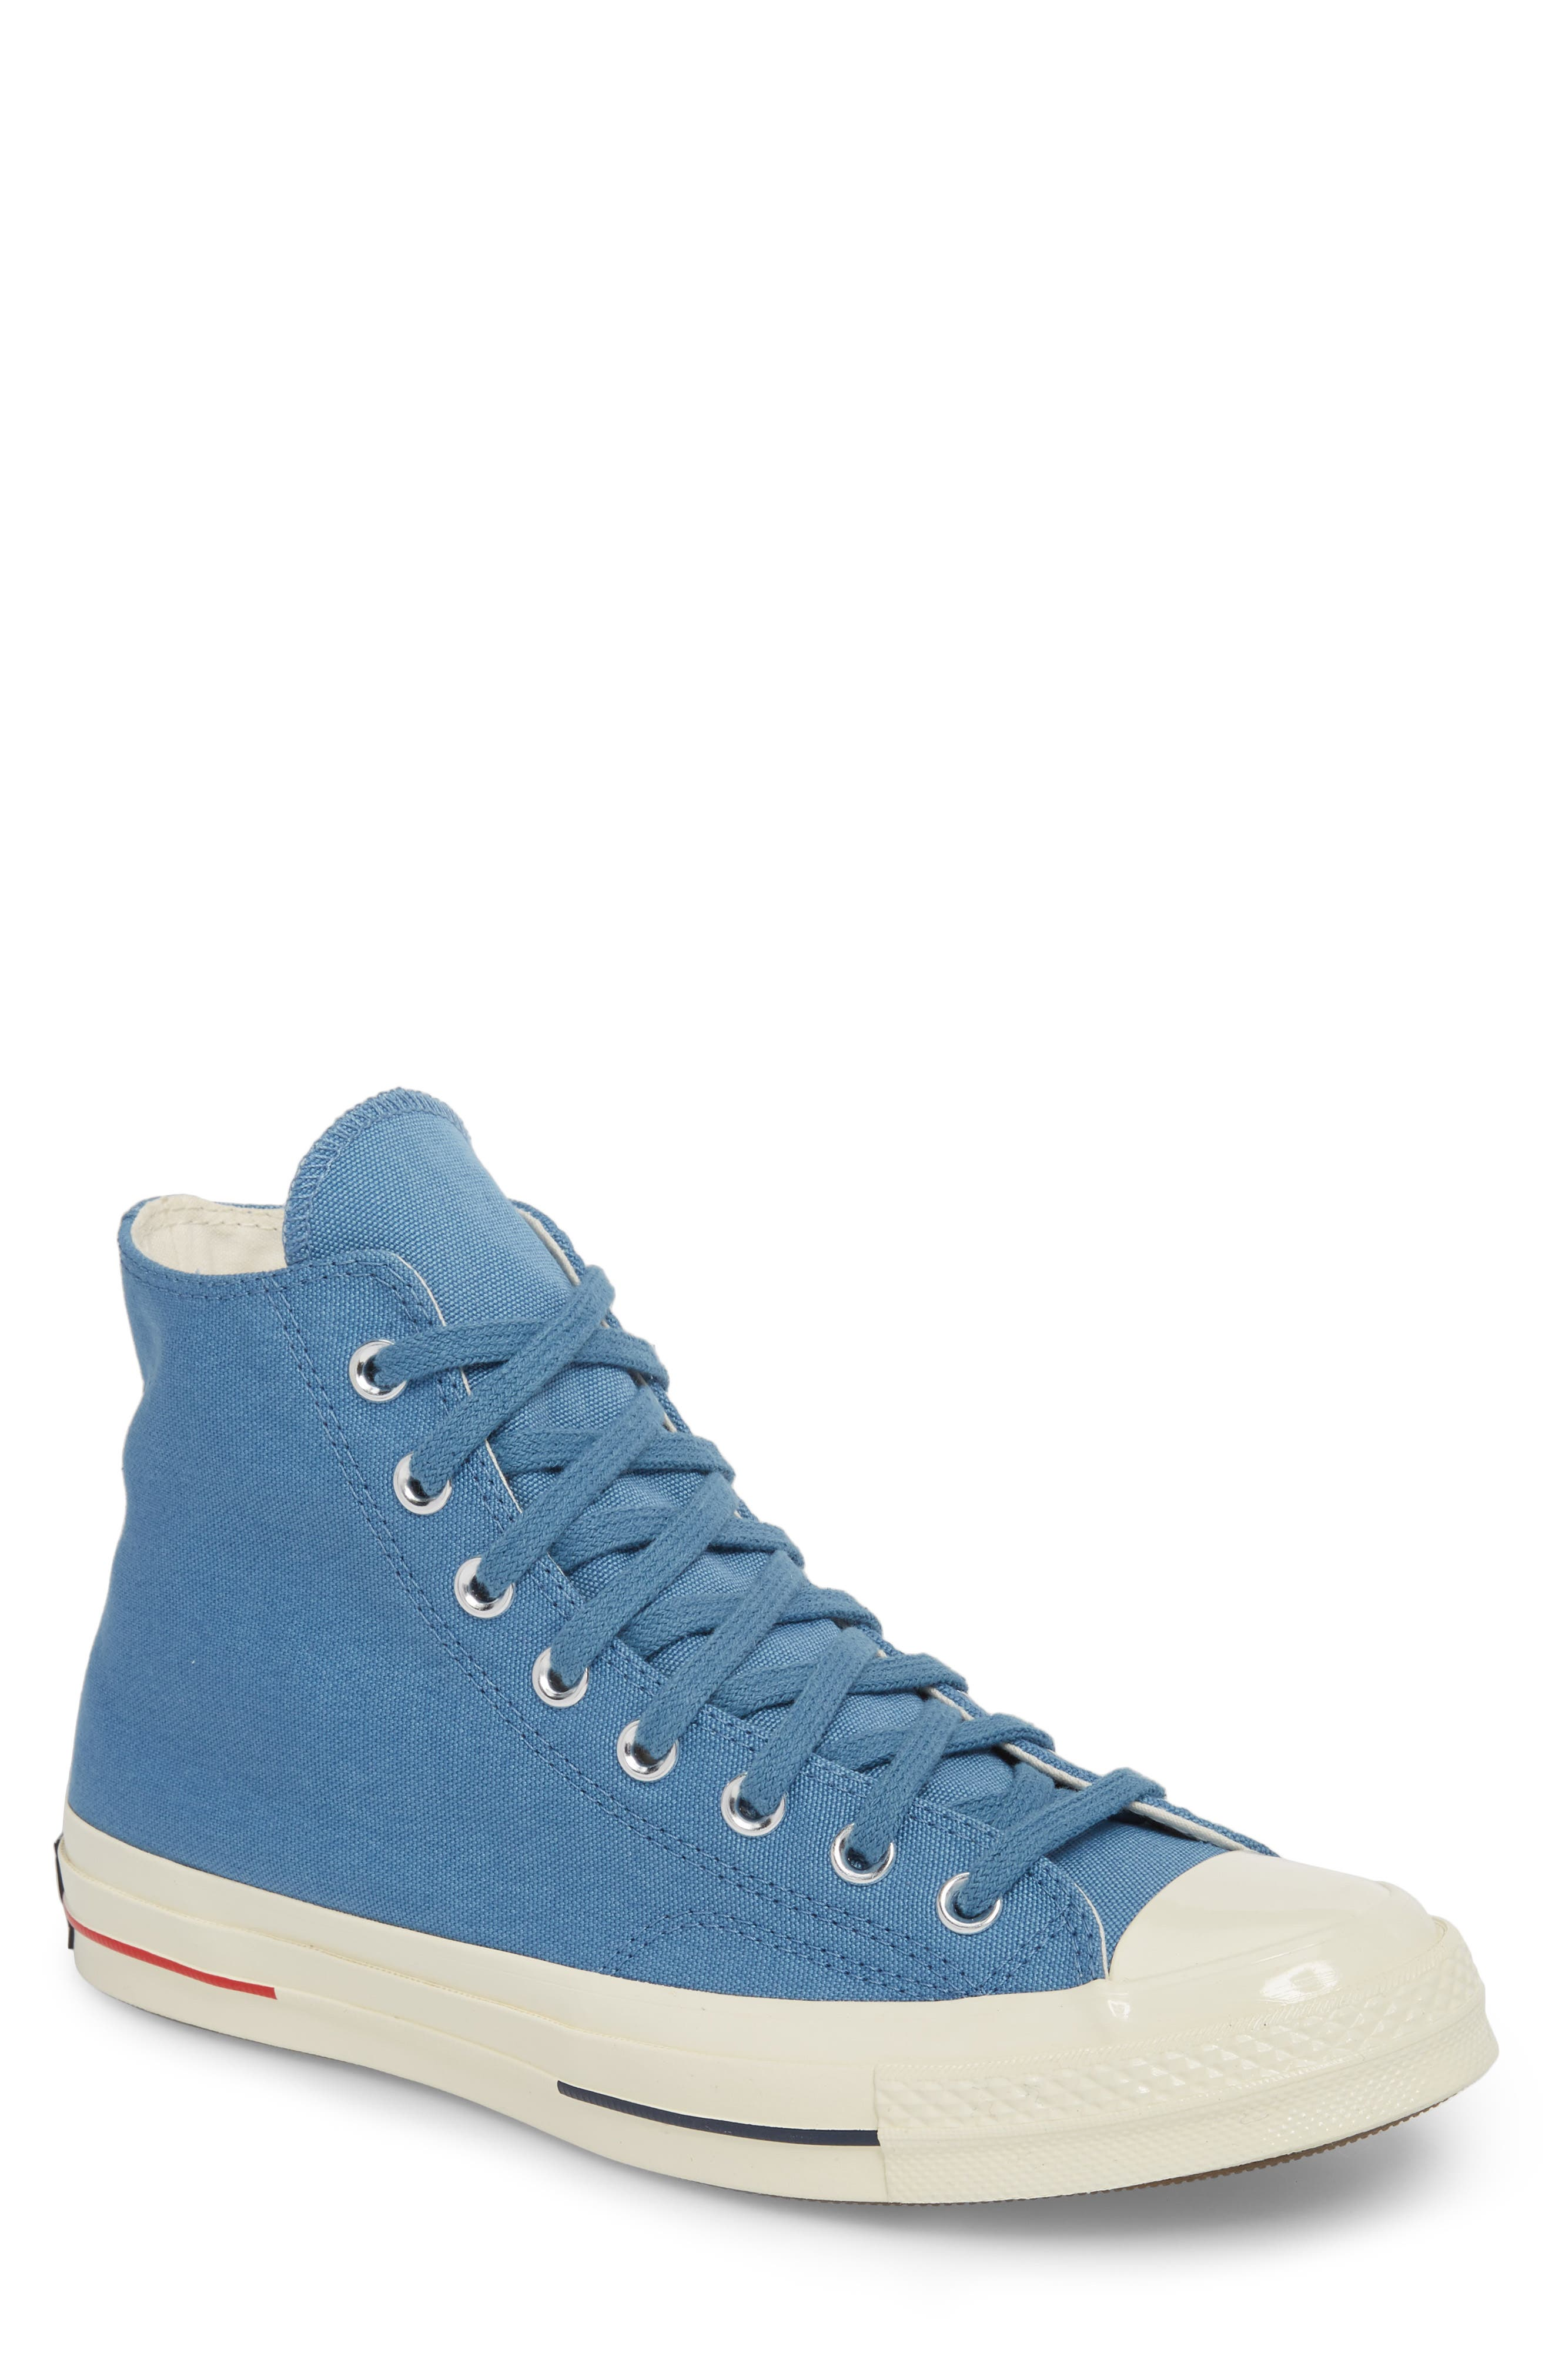 Chuck Taylor<sup>®</sup> All Star<sup>®</sup> '70s Heritage High Top Sneaker,                         Main,                         color, 400